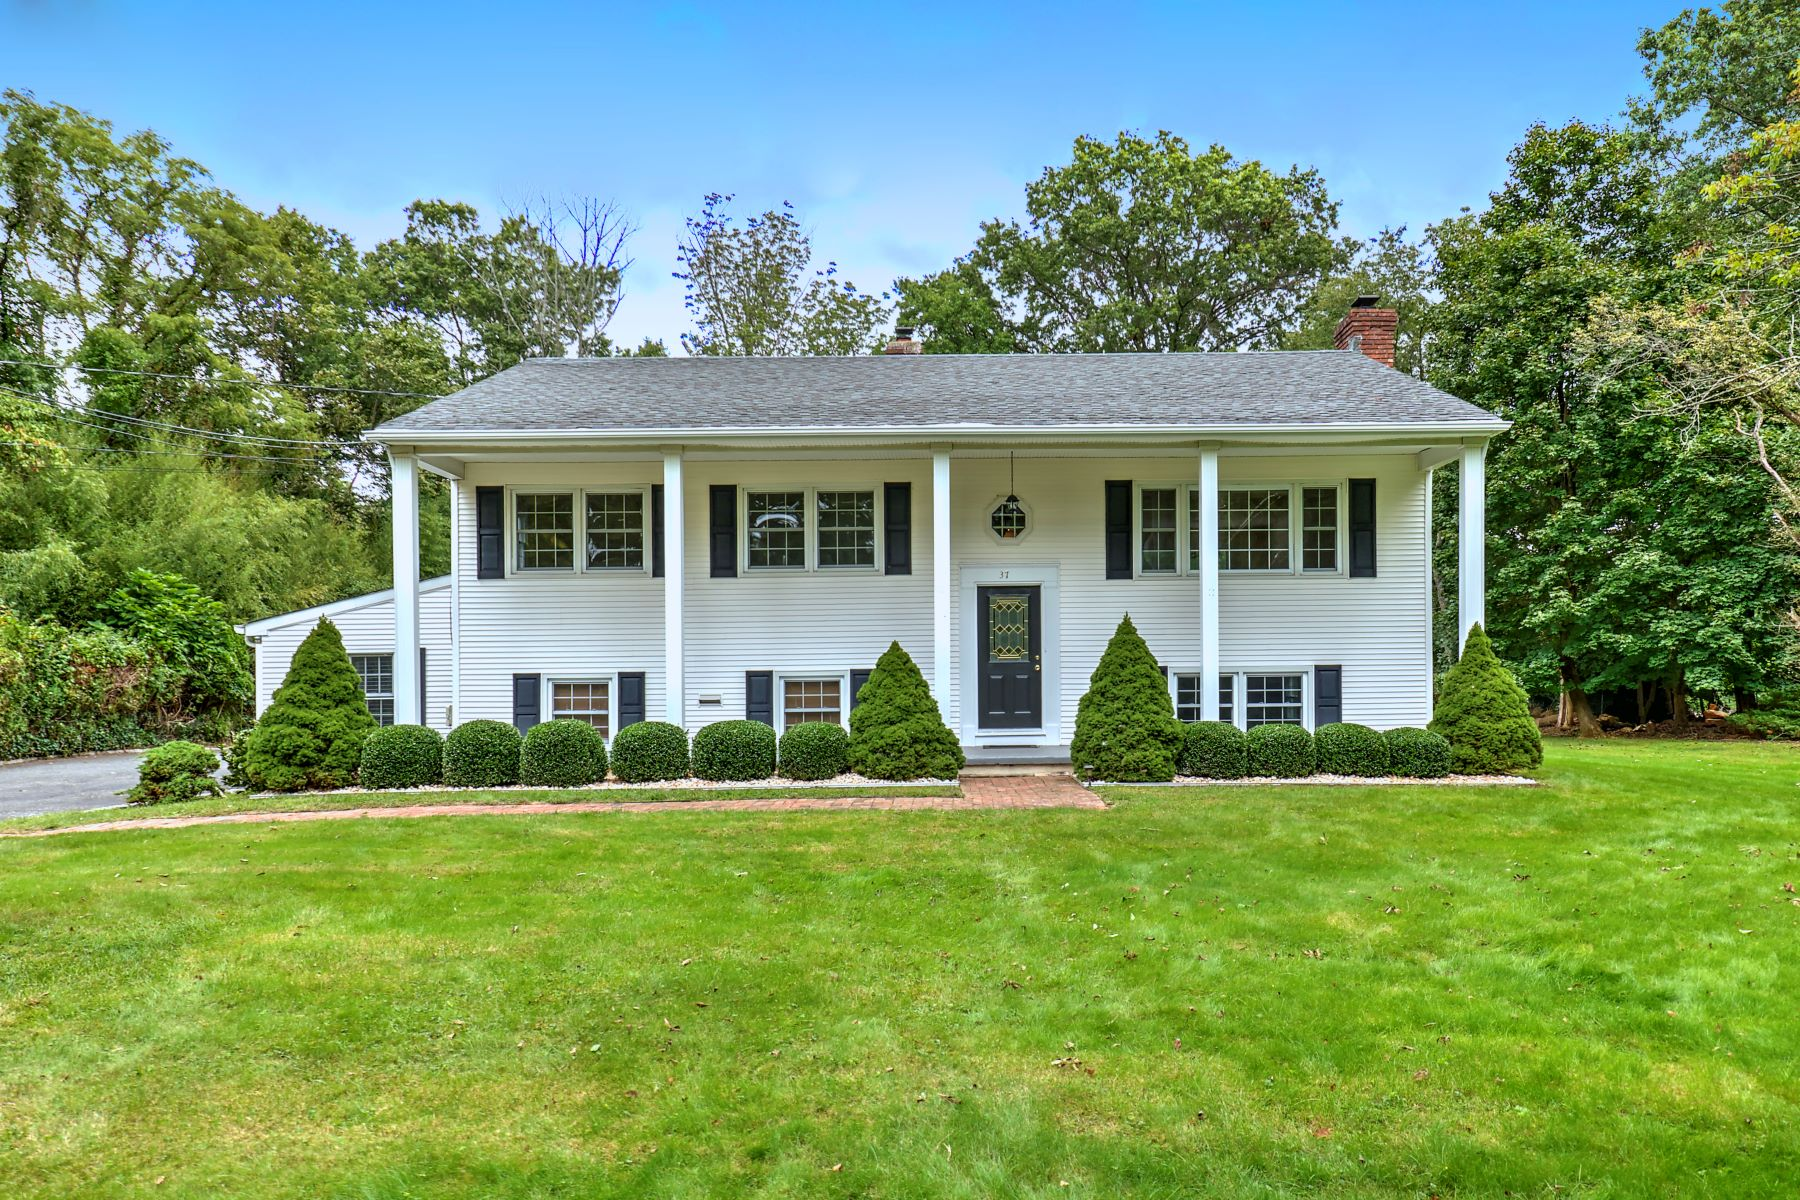 Single Family Homes for Sale at Immaculate Home in Desirable Basking Ridge 37 Parkview Avenue, Basking Ridge, New Jersey 07920 United States